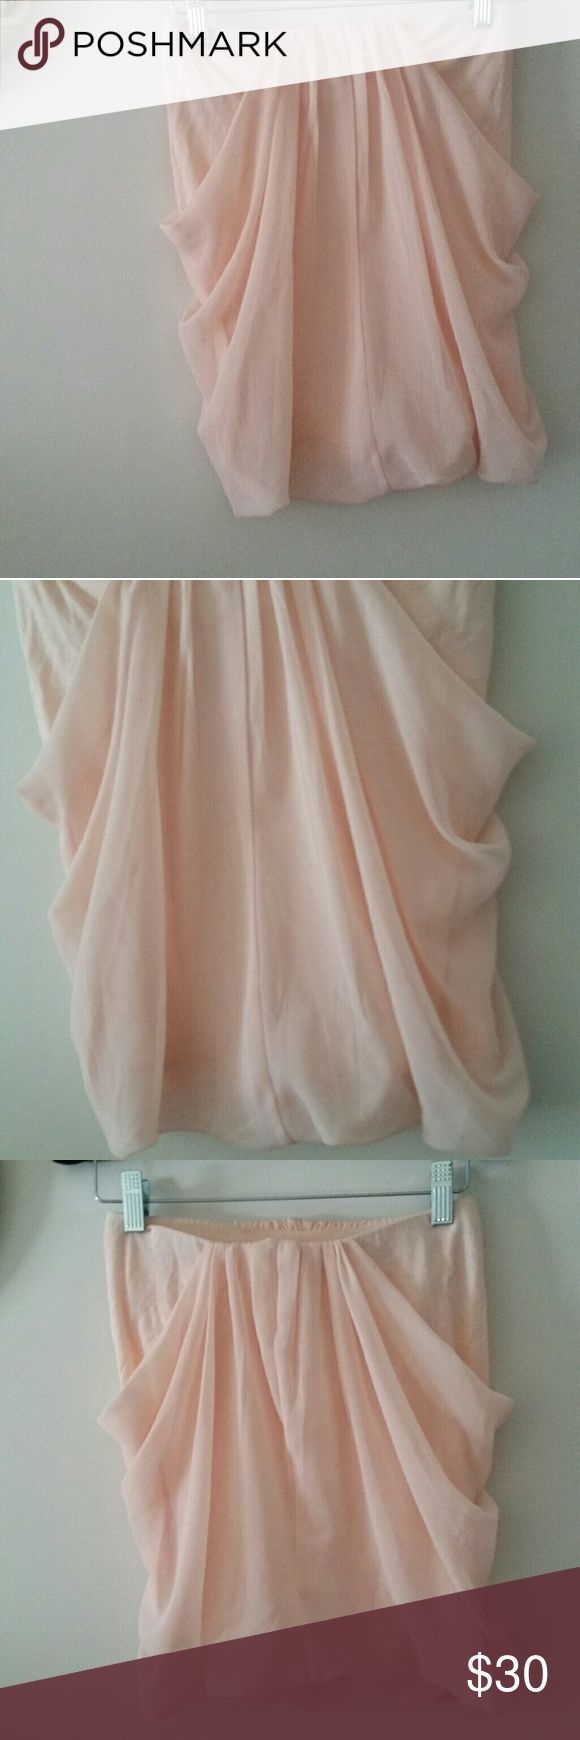 Pink Chiffon Tube Top Express Size XS Like New Ballet slipper pink chiffon tube top from Express in Size XS. Like new condition. Fully lined and has elastic strapless bra inside. Banded at top to stay up. Beautiful flowy fabric. Express Tops